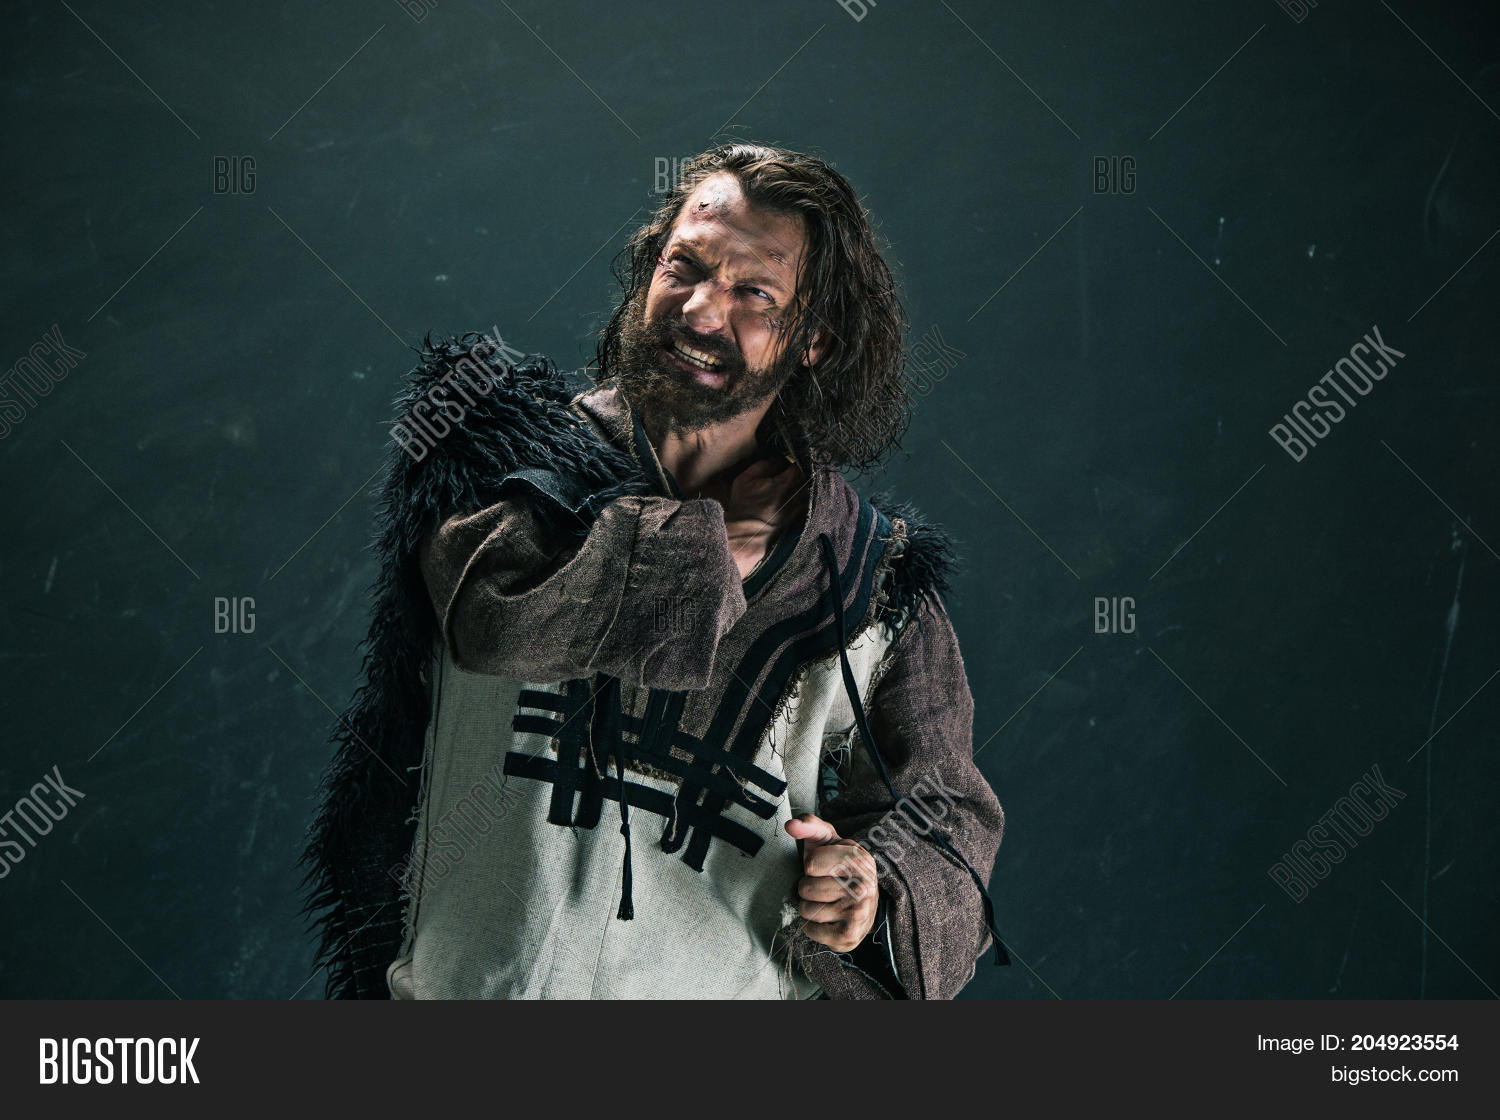 actor,adult,almsman,art,attractive,beggar,black,bum,cadger,canvas,caucasian,clothes,concept,cool,dirt,dirty,emotions,exhausted,expression,face,guy,help,homeless,hungry,loner,makeup,male,man,mature,mendicant,moocher,old,one,pain,pauper,people,person,poor,portrait,poverty,ragamuffin,rags,street,studio,survival,tired,urban,vagrancy,wanderer,wounded